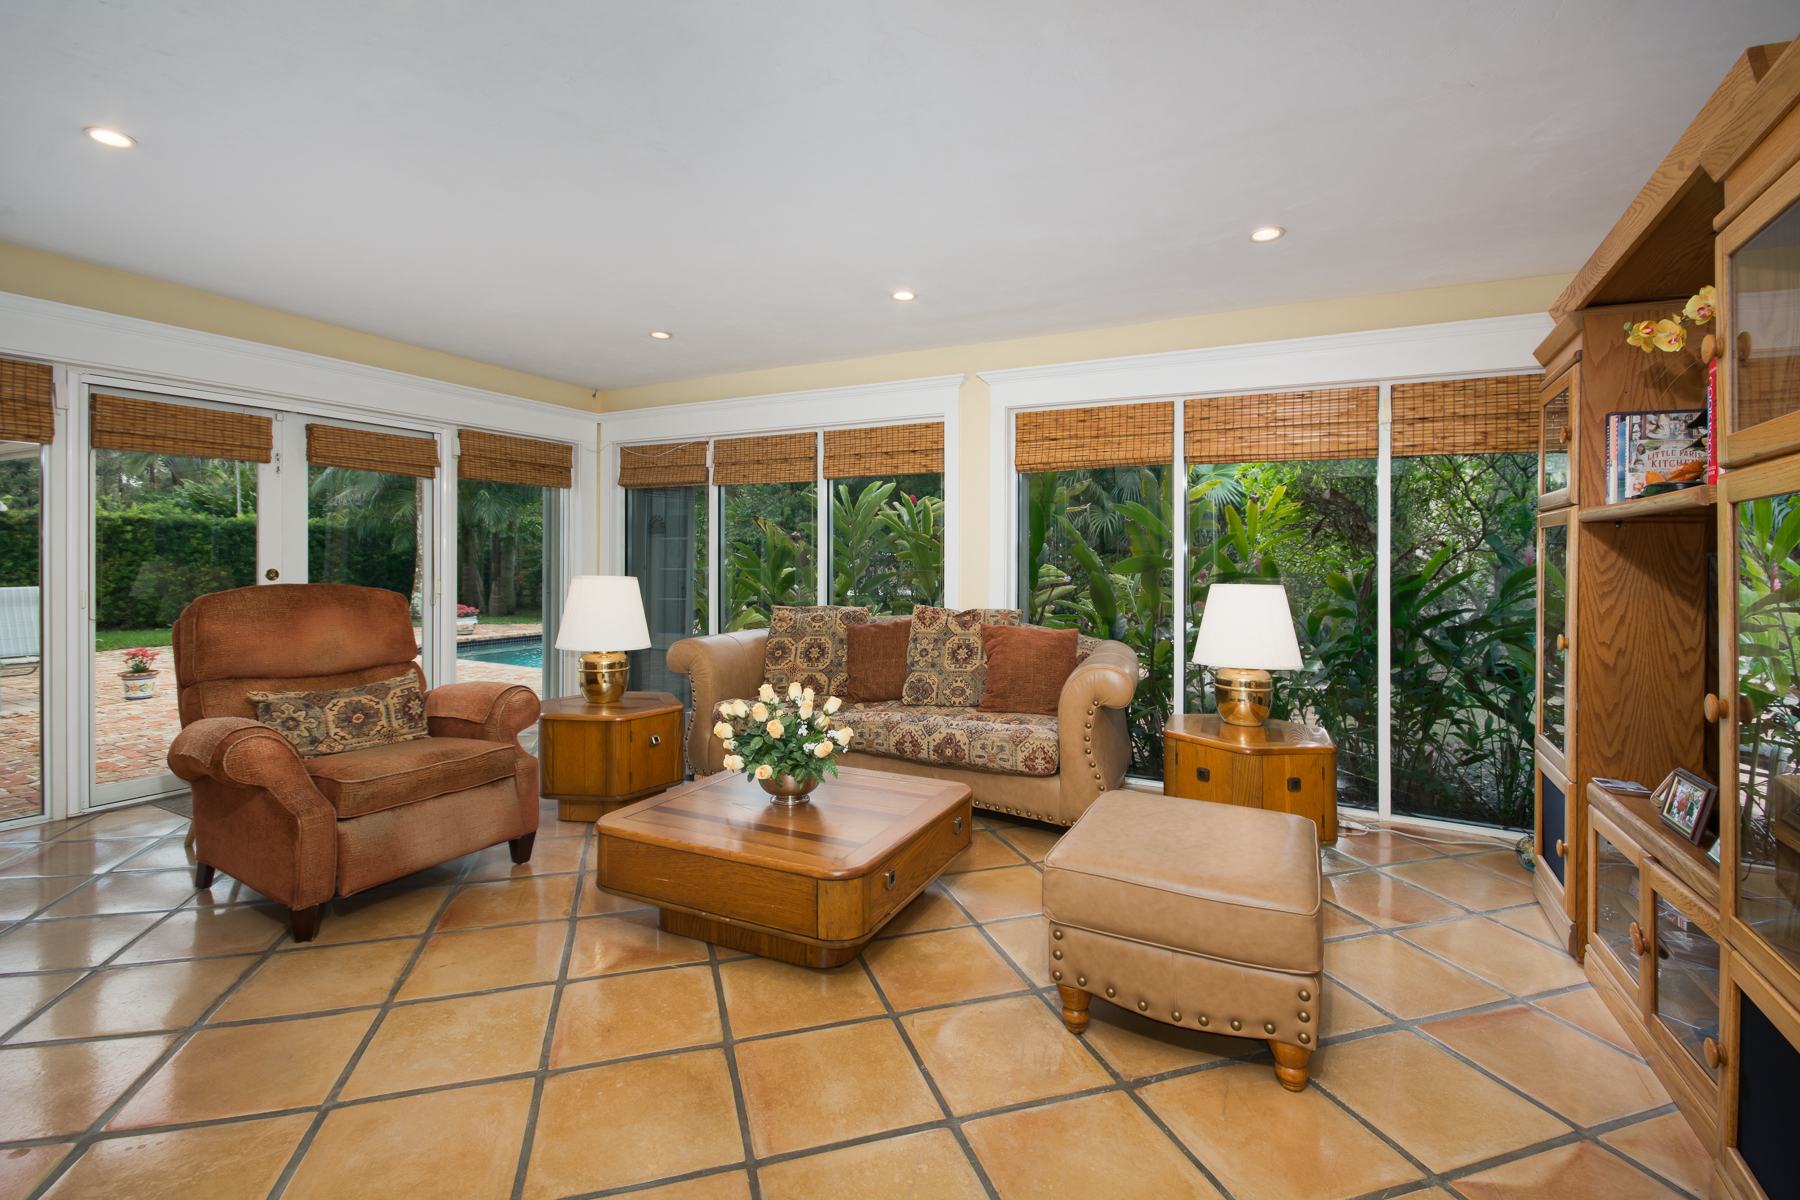 05 Family Room with Pool and Garden Views | Miami Real Estate Works